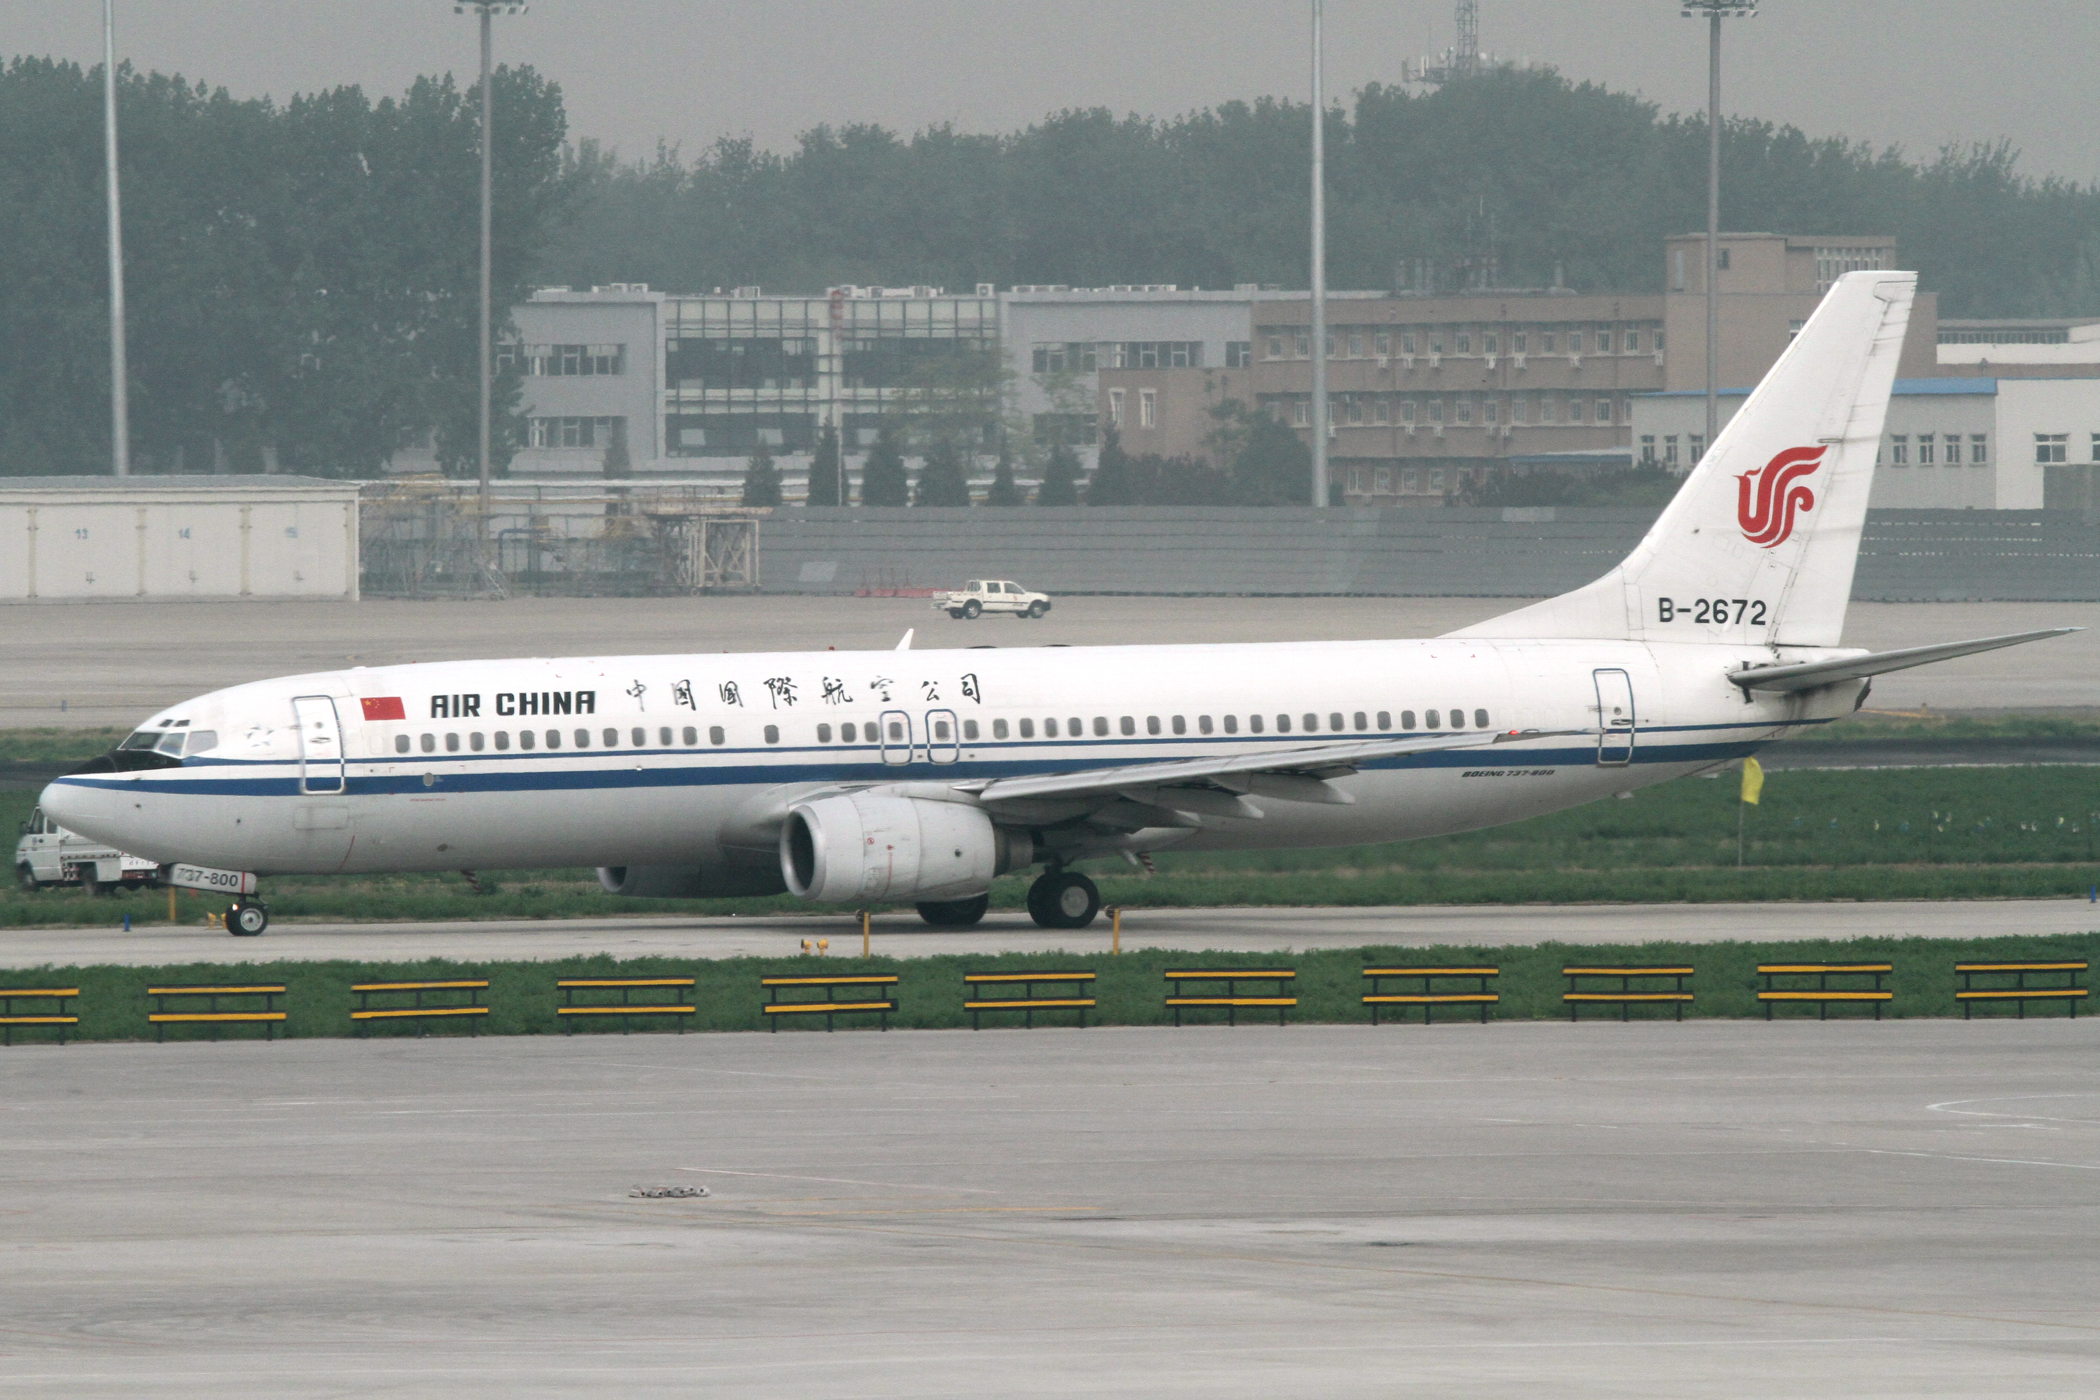 File:Air China B737-800(B-2672) (4611433875).